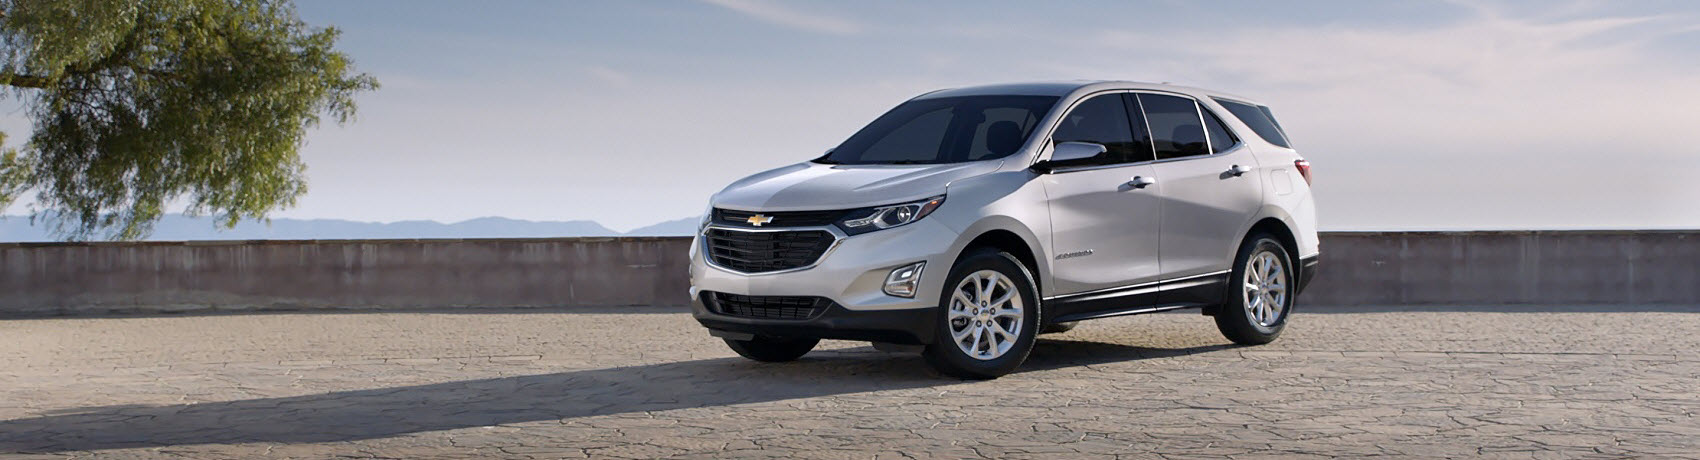 Chevy Equinox Reviews